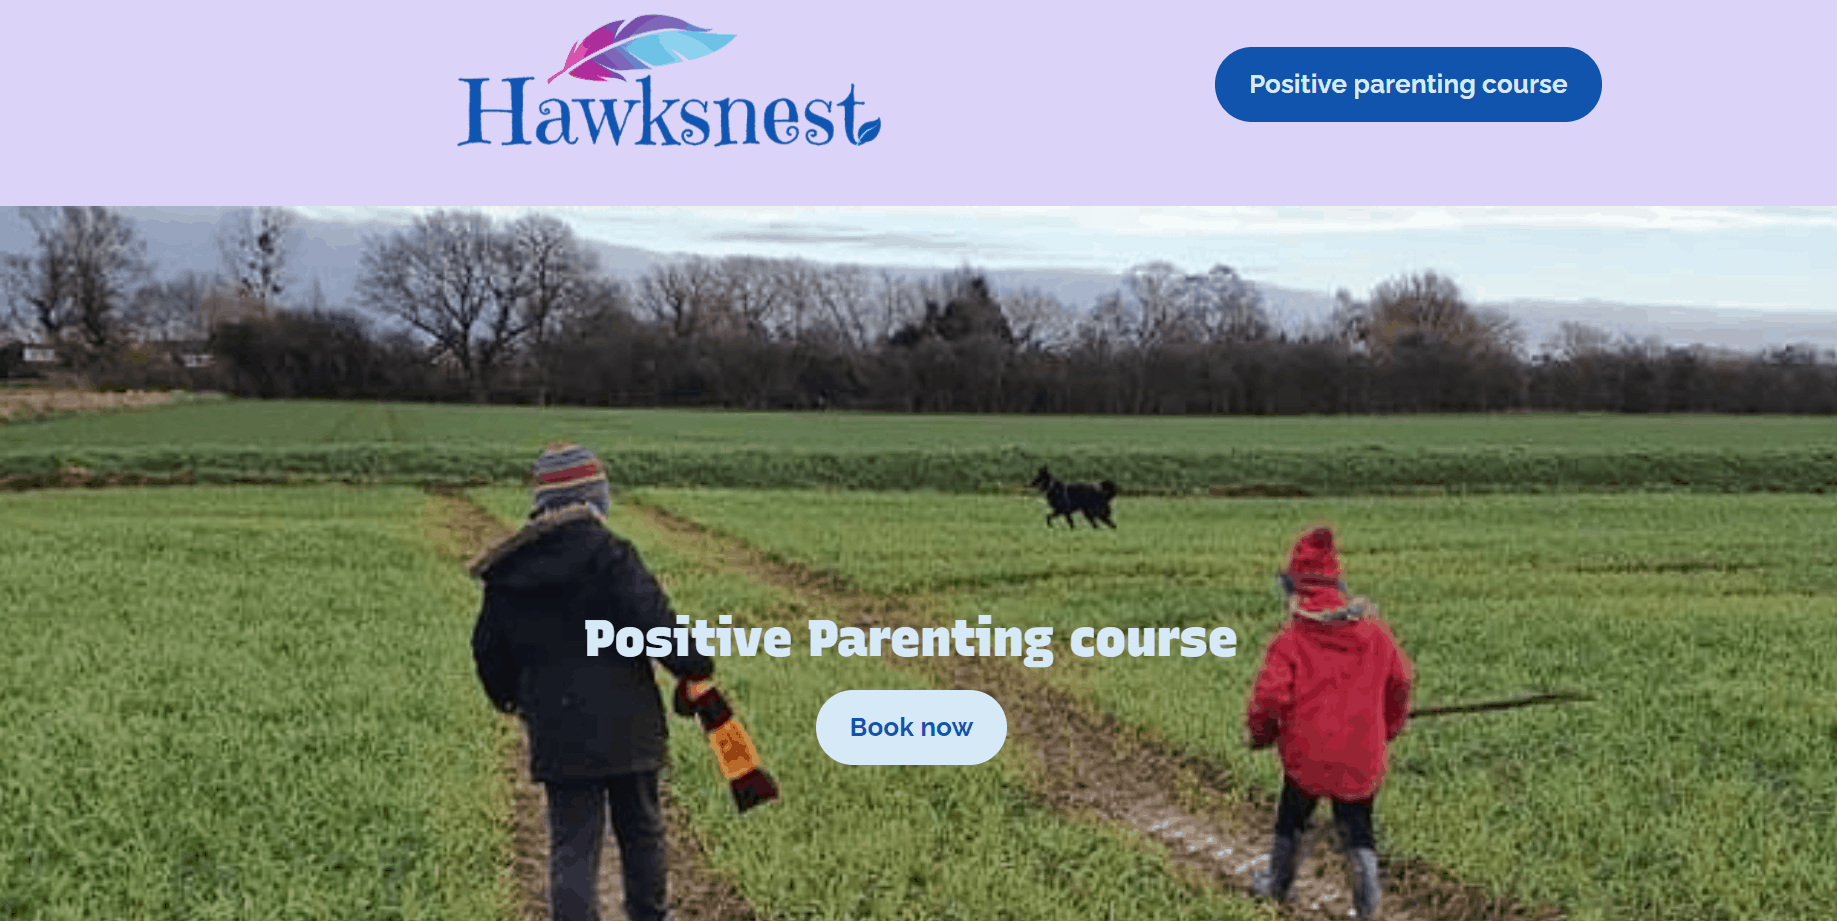 Hawksnest Positive Parenting Course starts this week!